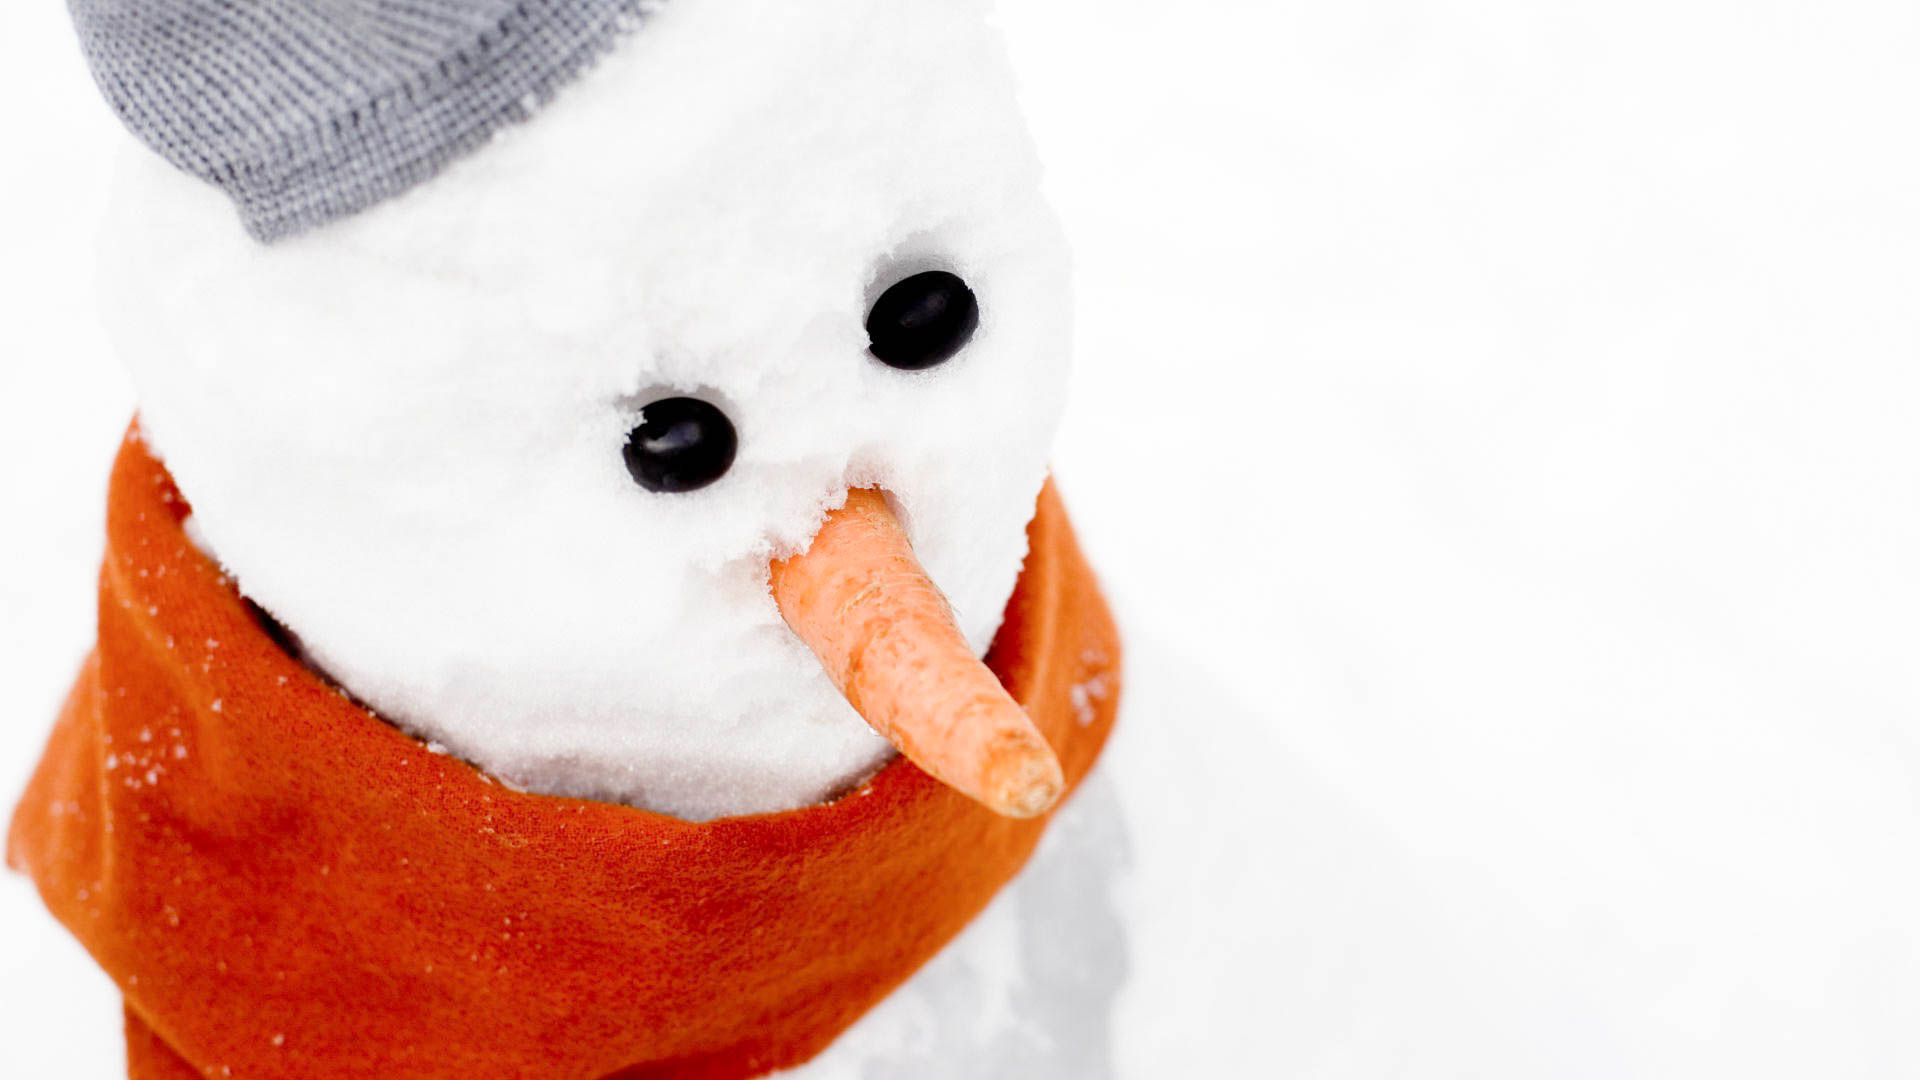 Snowman Awesome Wallpapers Backgrounds In High Resolution All